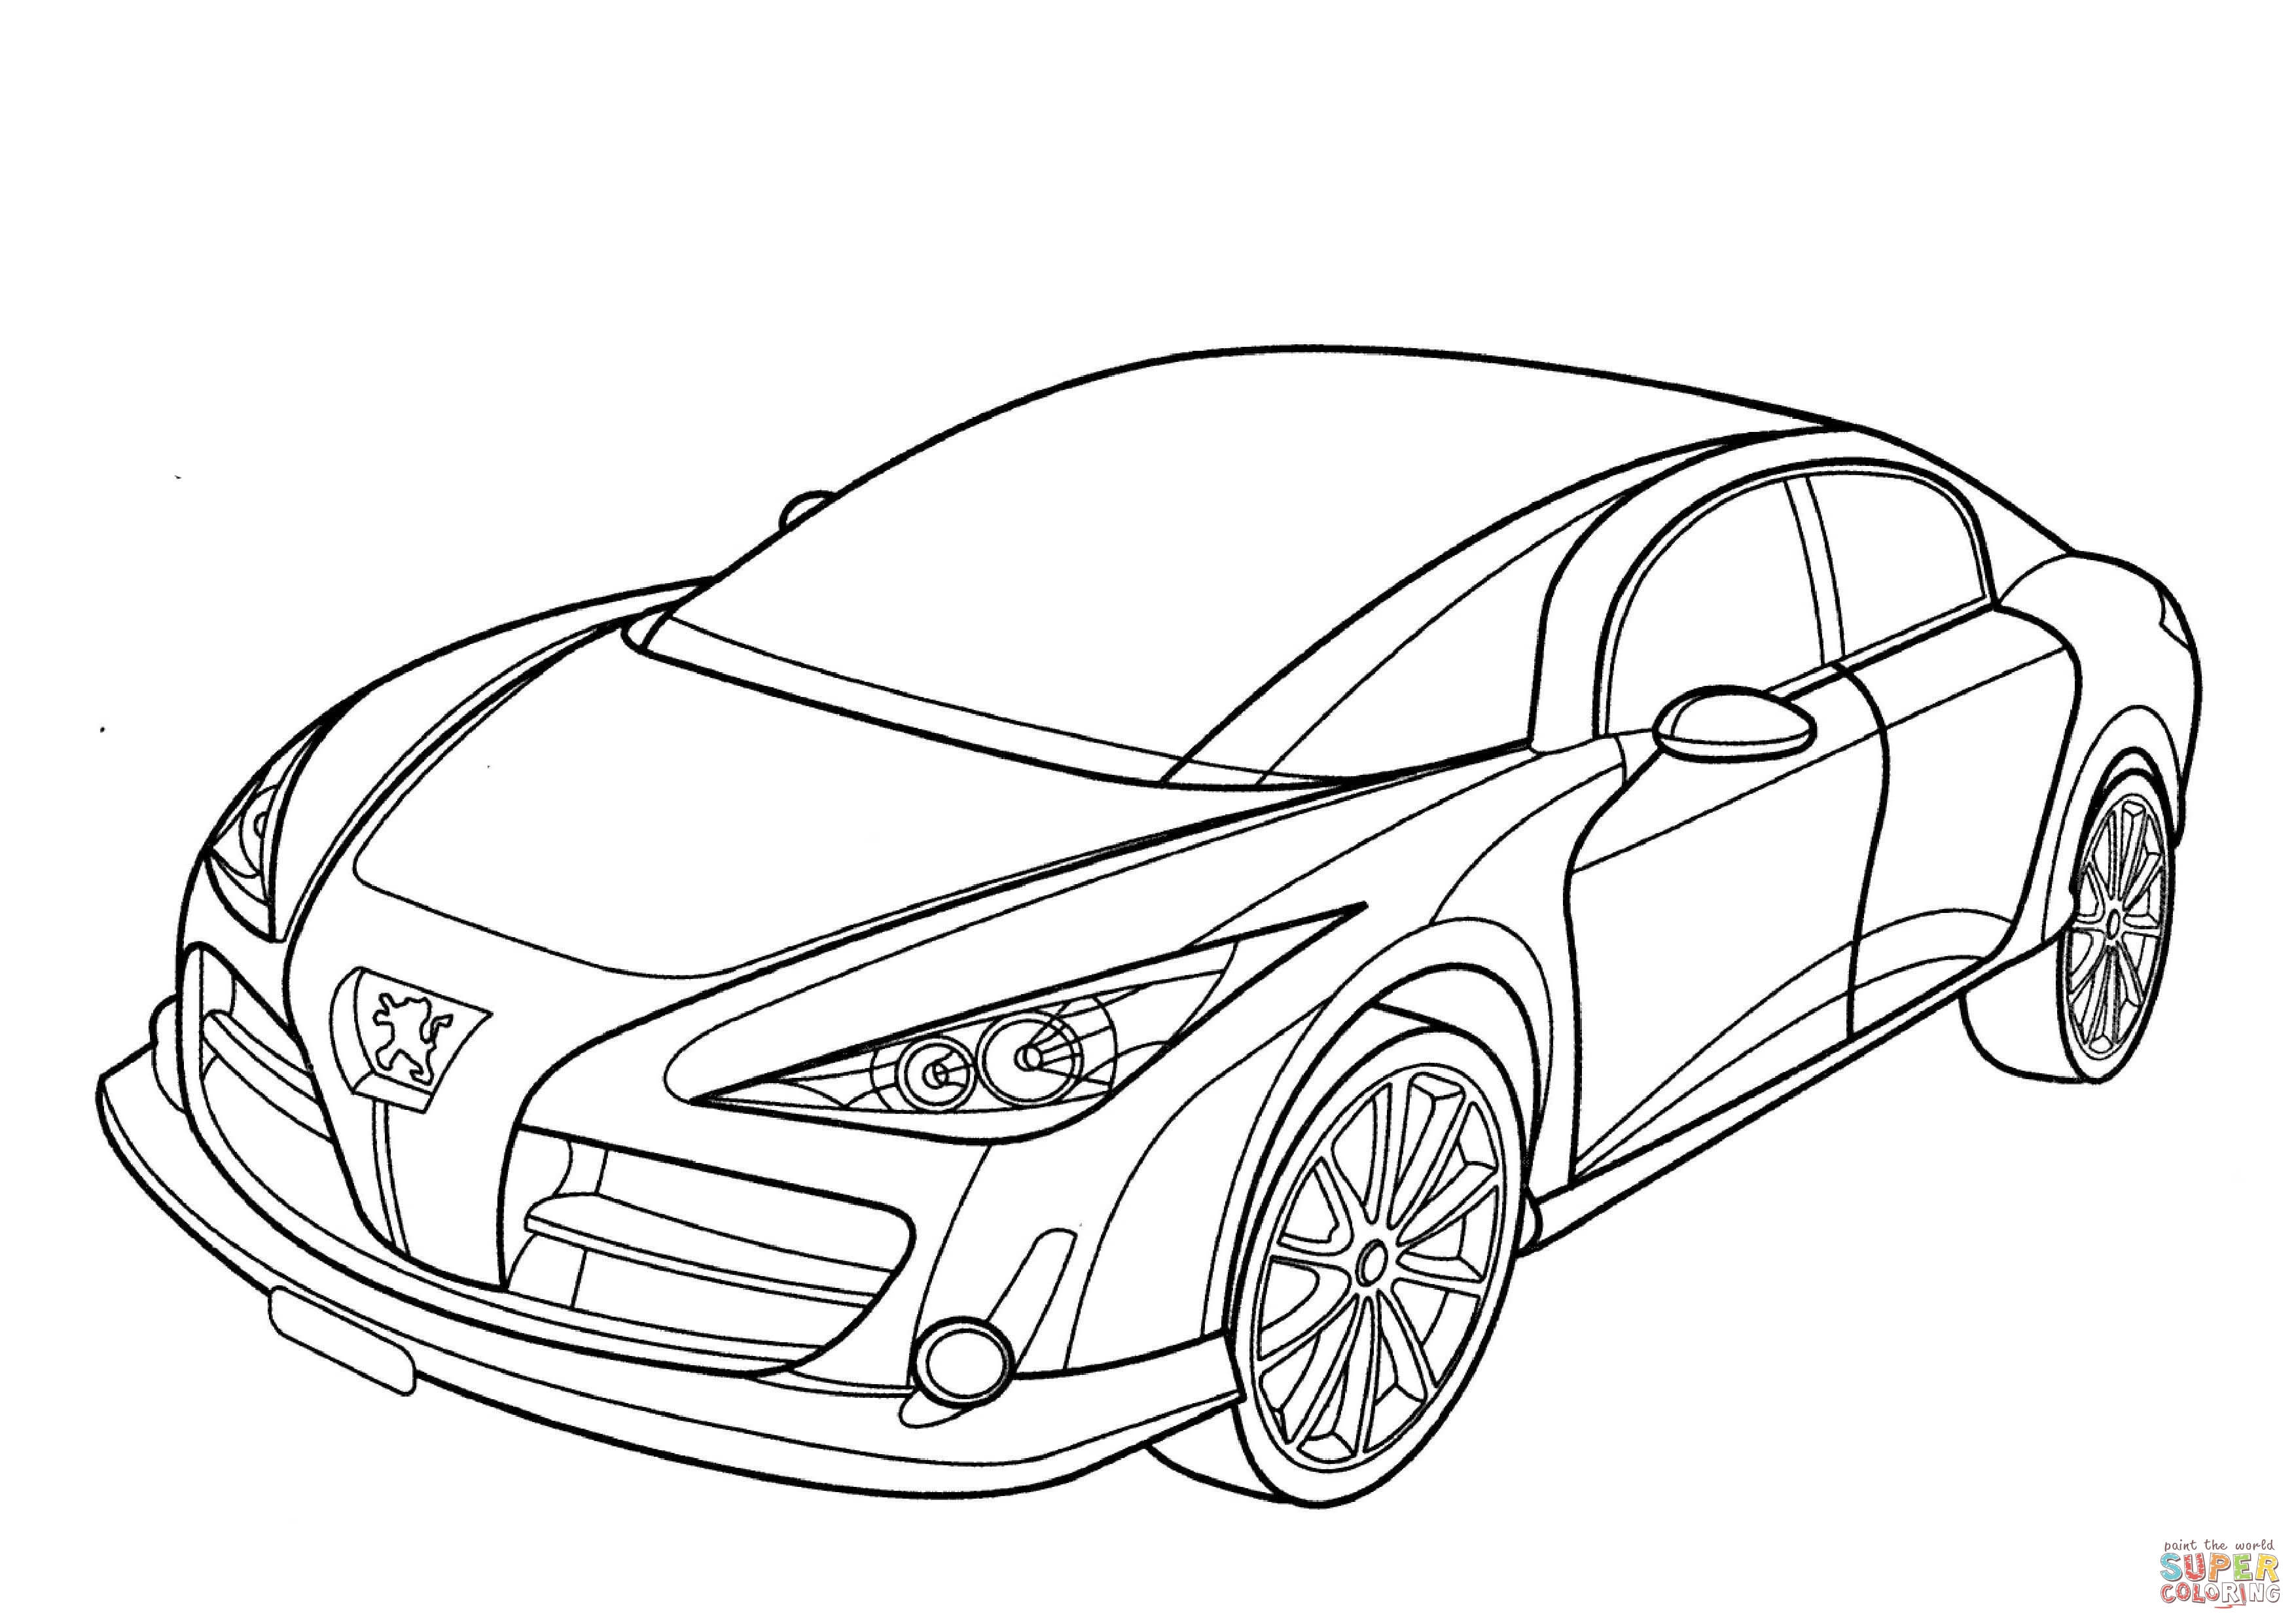 3508x2480 Peugeot Rc Coloring Page Free Printable Coloring Pages